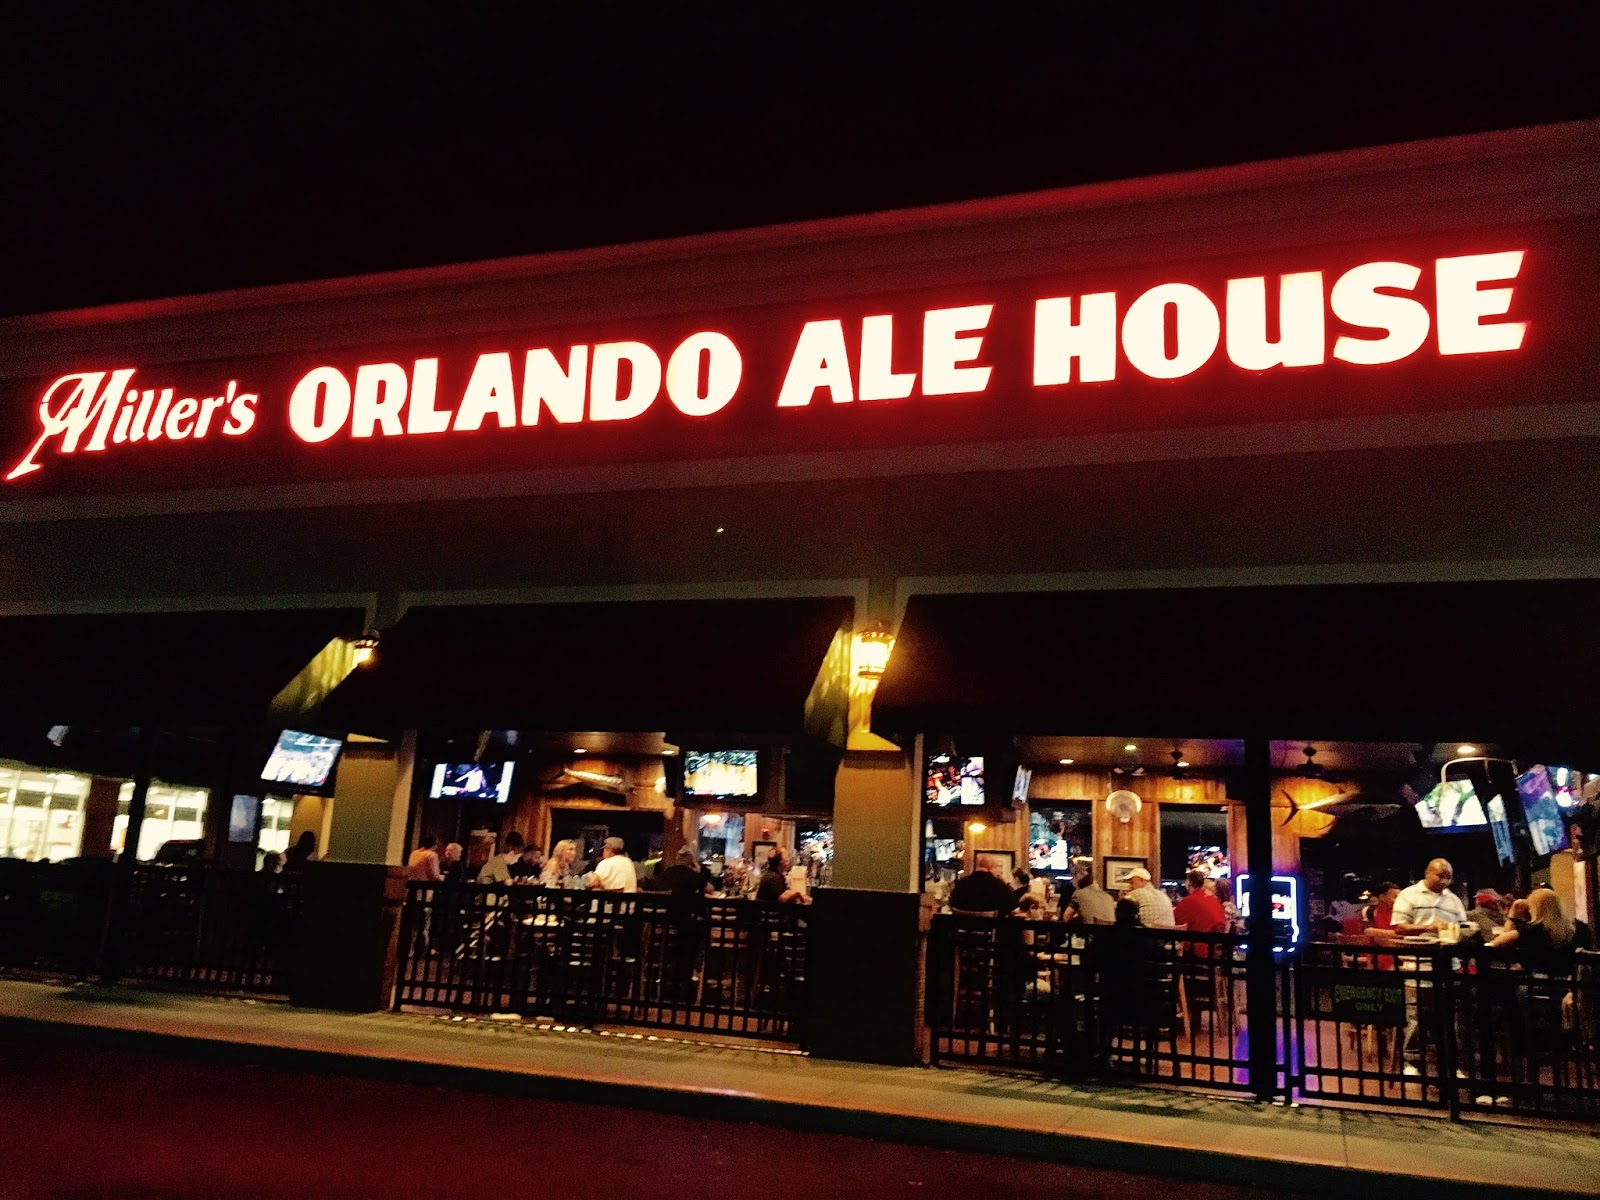 Nov 14, · Millers_Ale_House, Public Relations Manager at Miller's Ale House - Orlando Sanford, responded to this review Responded April 5, Oh no Howard! This definitely doesn't sound like a typical trip to our House, and we'd like to follow up with you /5().